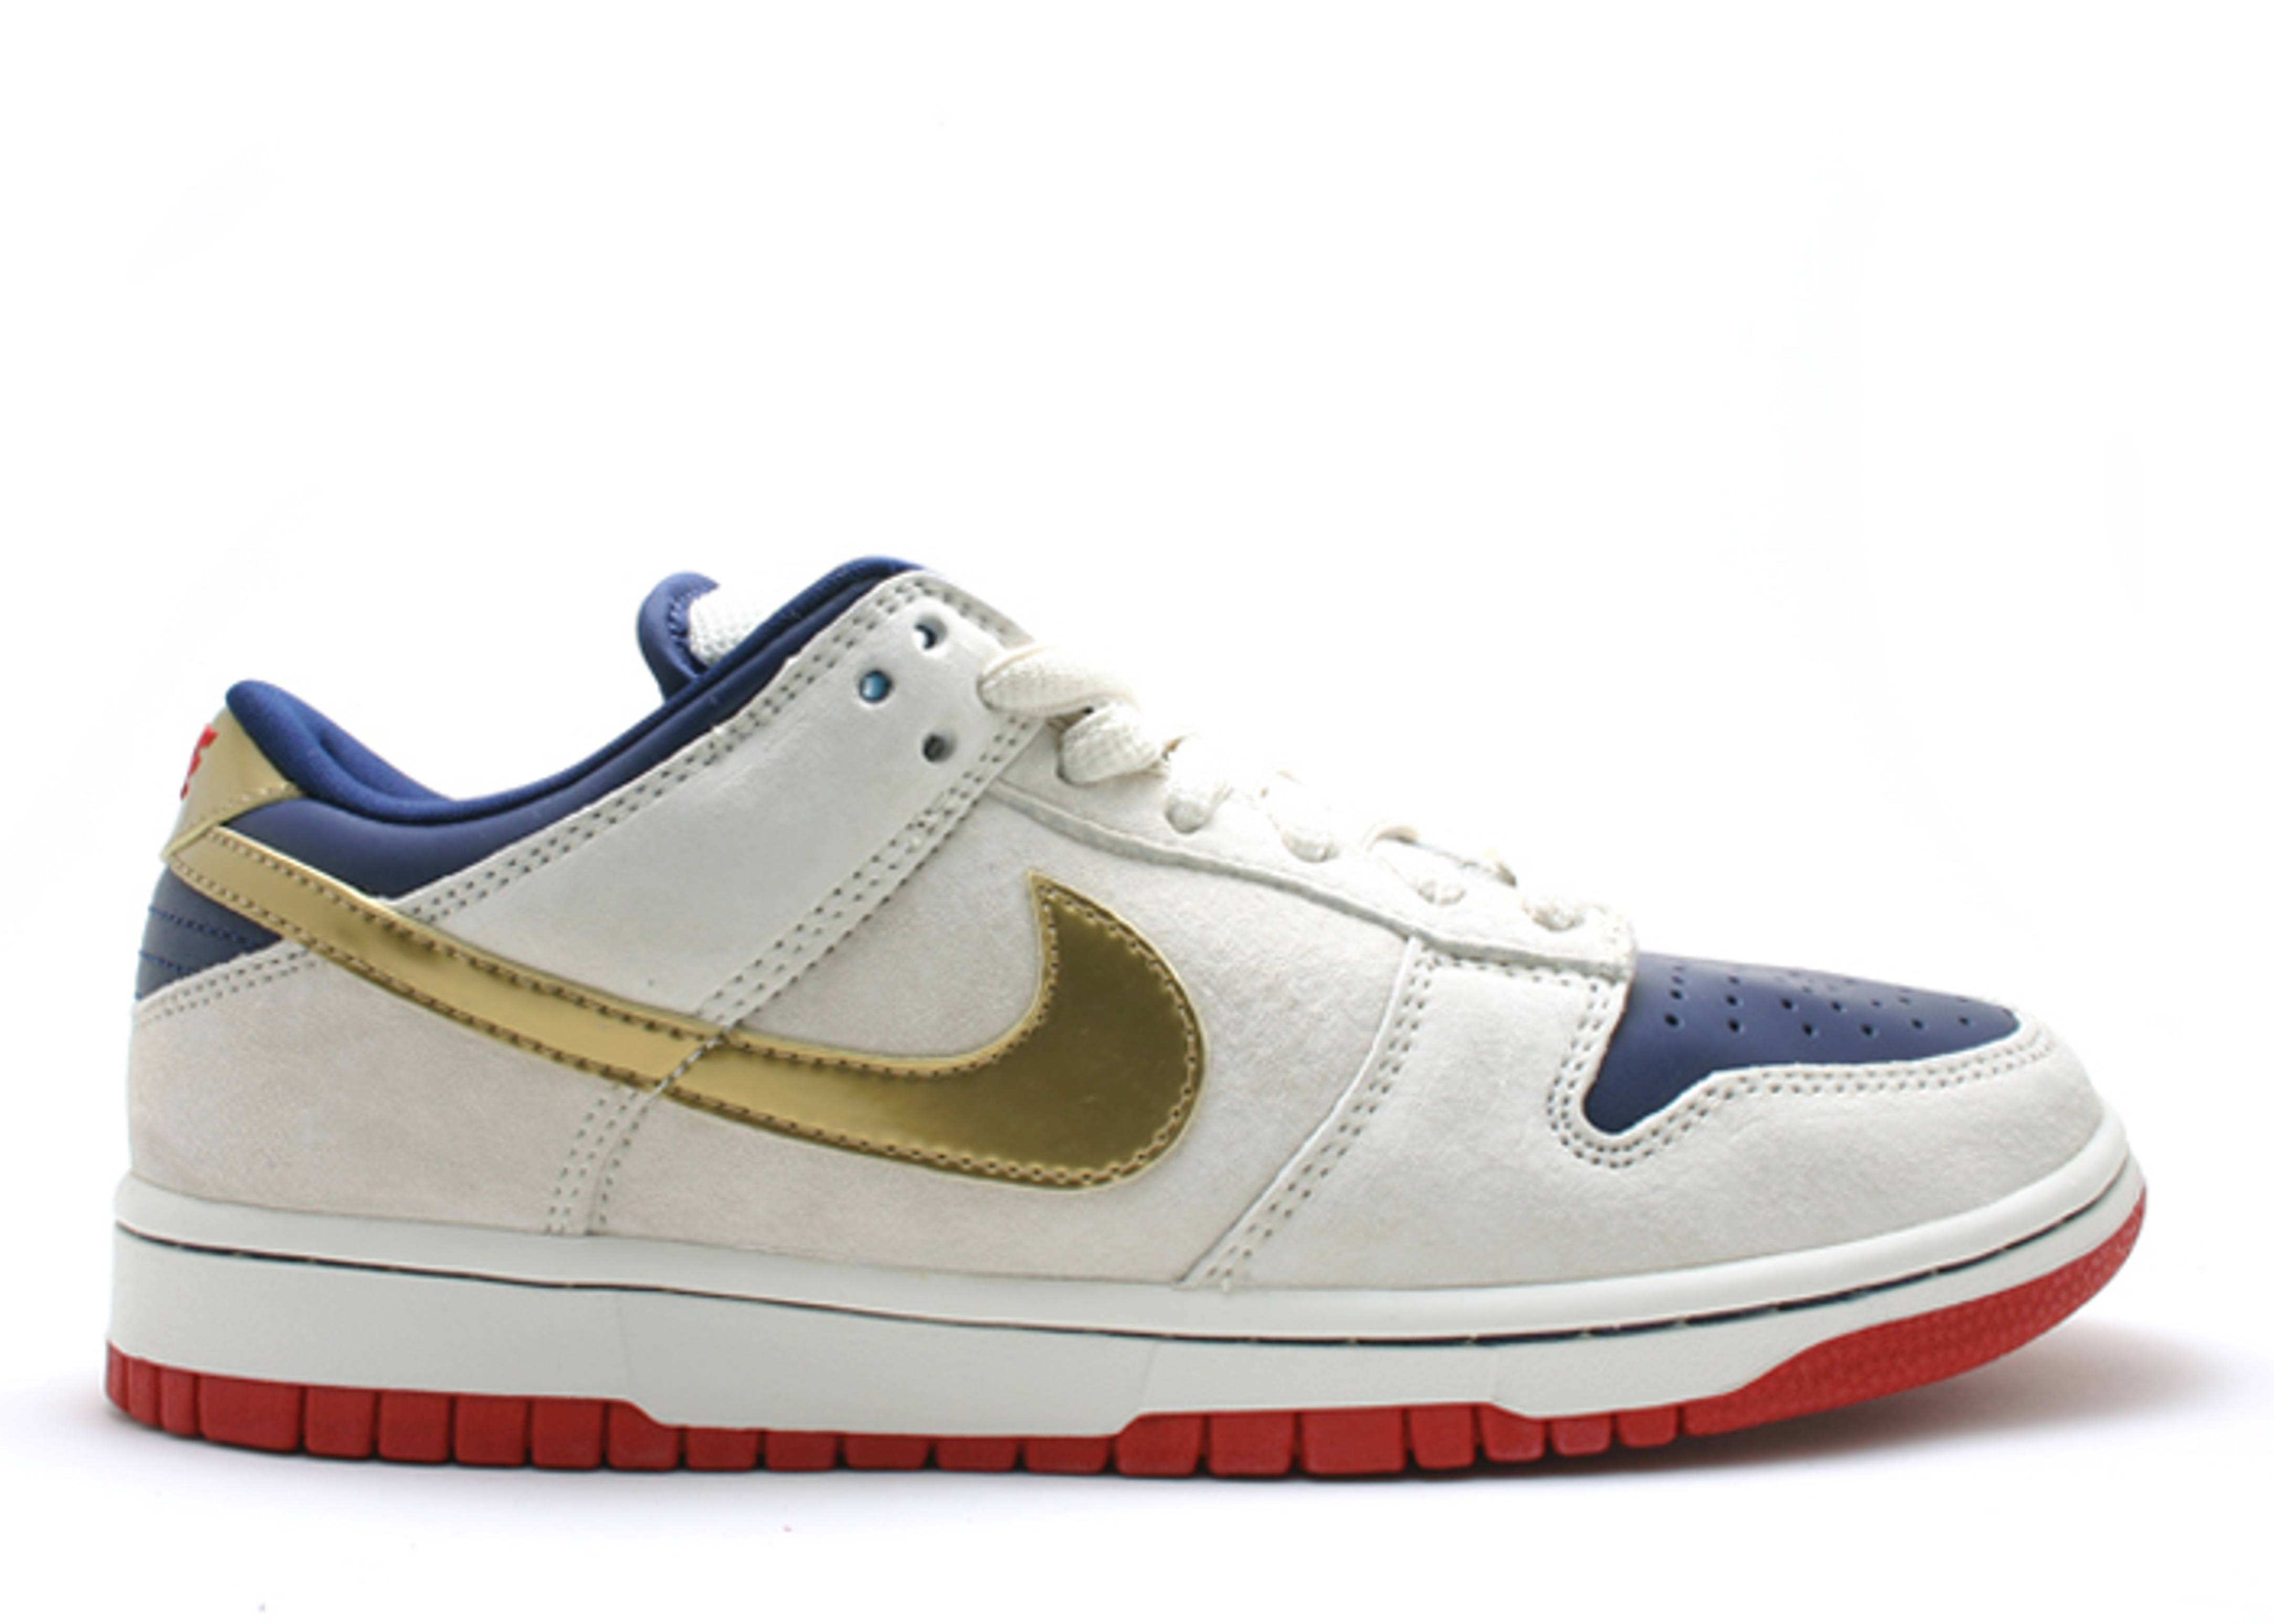 """Dunk Low Pro SB 'Old Spice' """"Old Spice"""""""